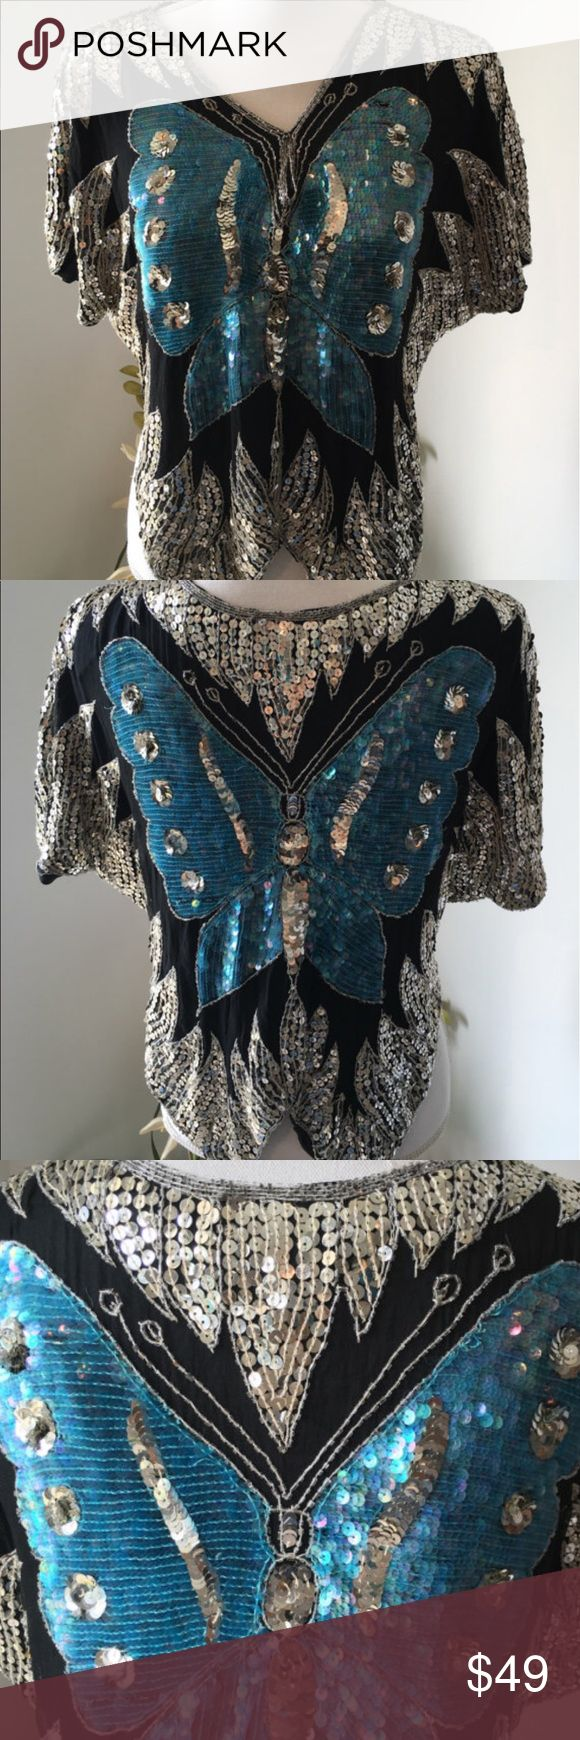 Vintage butterfly blouse 100% silk Vintage heavily sequined Butter Fly blouse on 100% silk fabric.  One size fits those size 10 or smaller, made in India.  This blouse is so very delicate and light considering the sheer number of sequins on it.  Sequin is in very good condition, with minimal loose or removed.  It appears the previous owner has closed the V front with two stitches.  These likely could be removed.  This blouse is not dry cleanable, nor is washing recommended.  Beautiful…